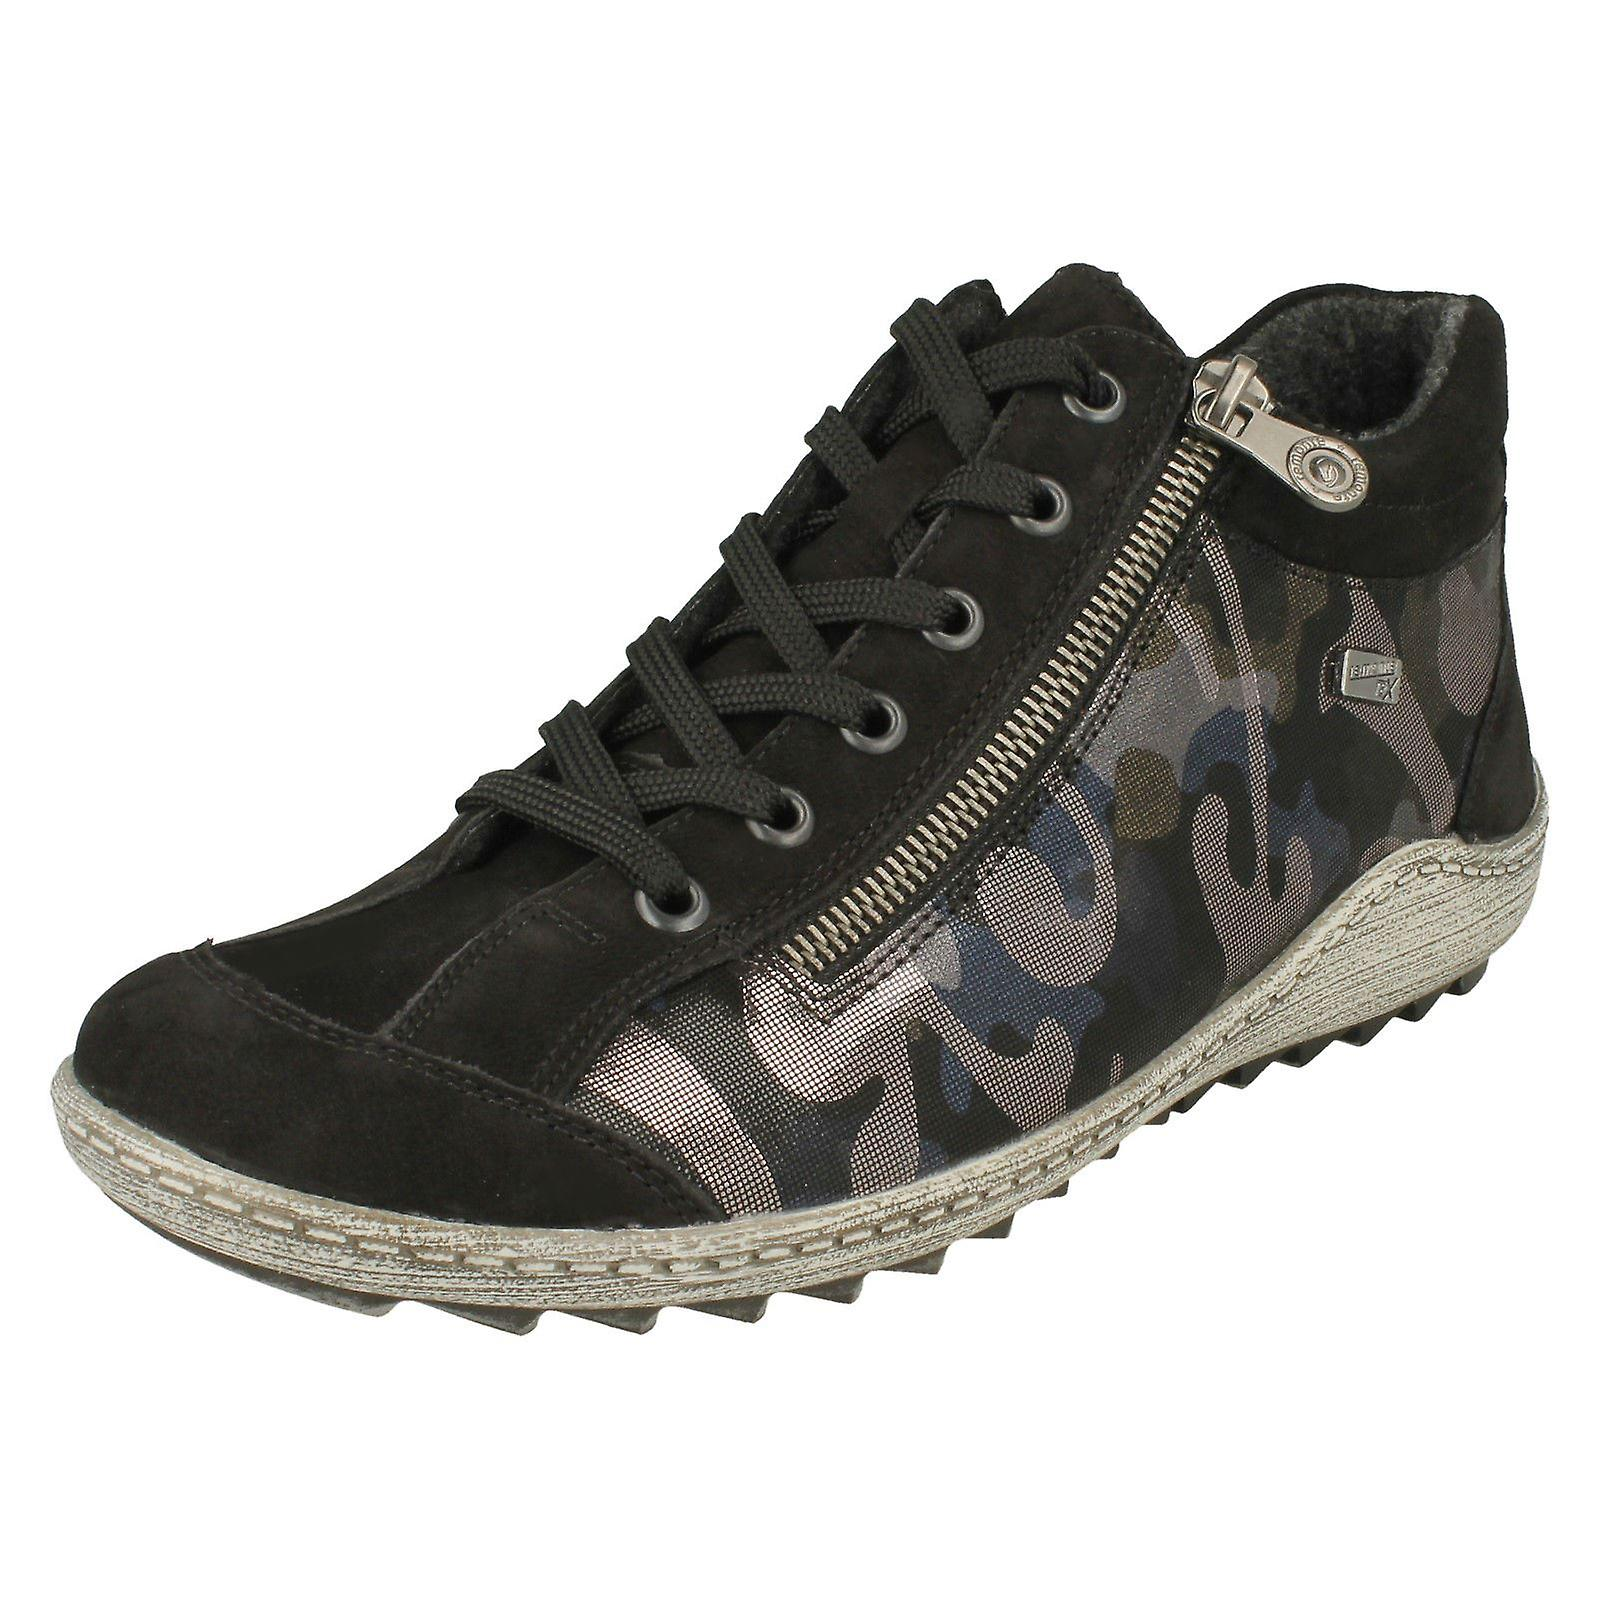 Panie remonte Lace up botki R1483 fT5sK